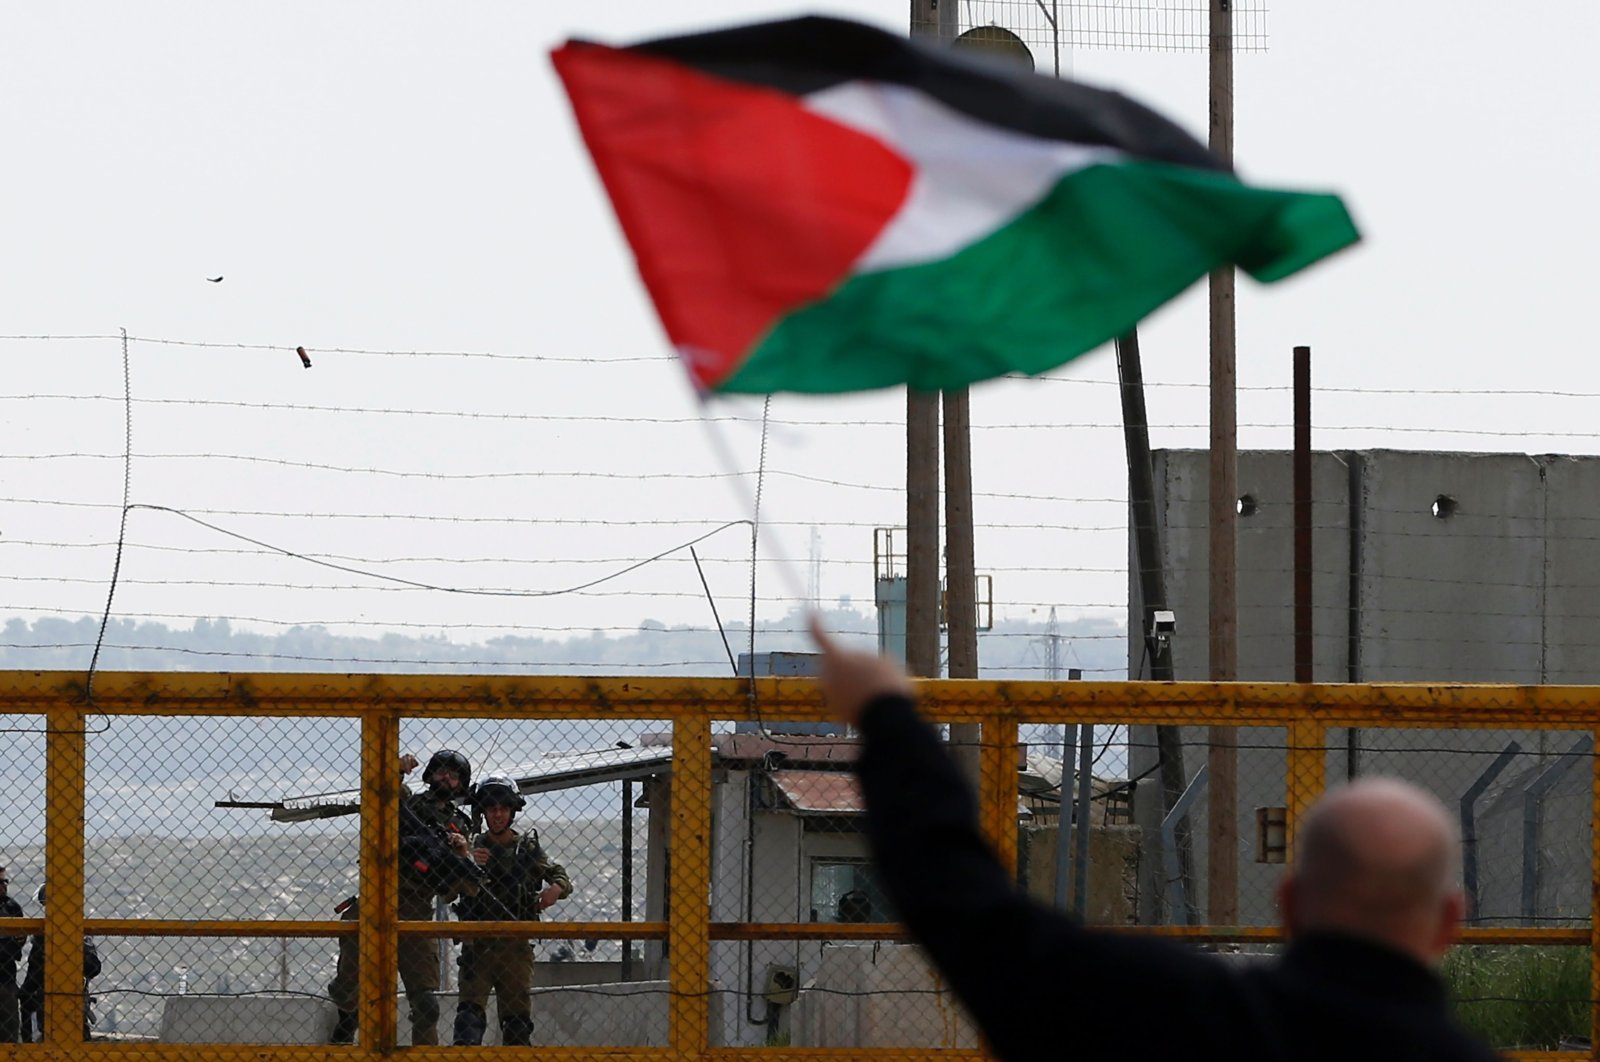 A Palestinian protester waves his national flag in front of Israeli security forces as they mark Land Day outside the compound of the Israeli-run Ofer prison near Betunia in the Israeli occupied West Bank, March 30, 2016. (AFP Photo)